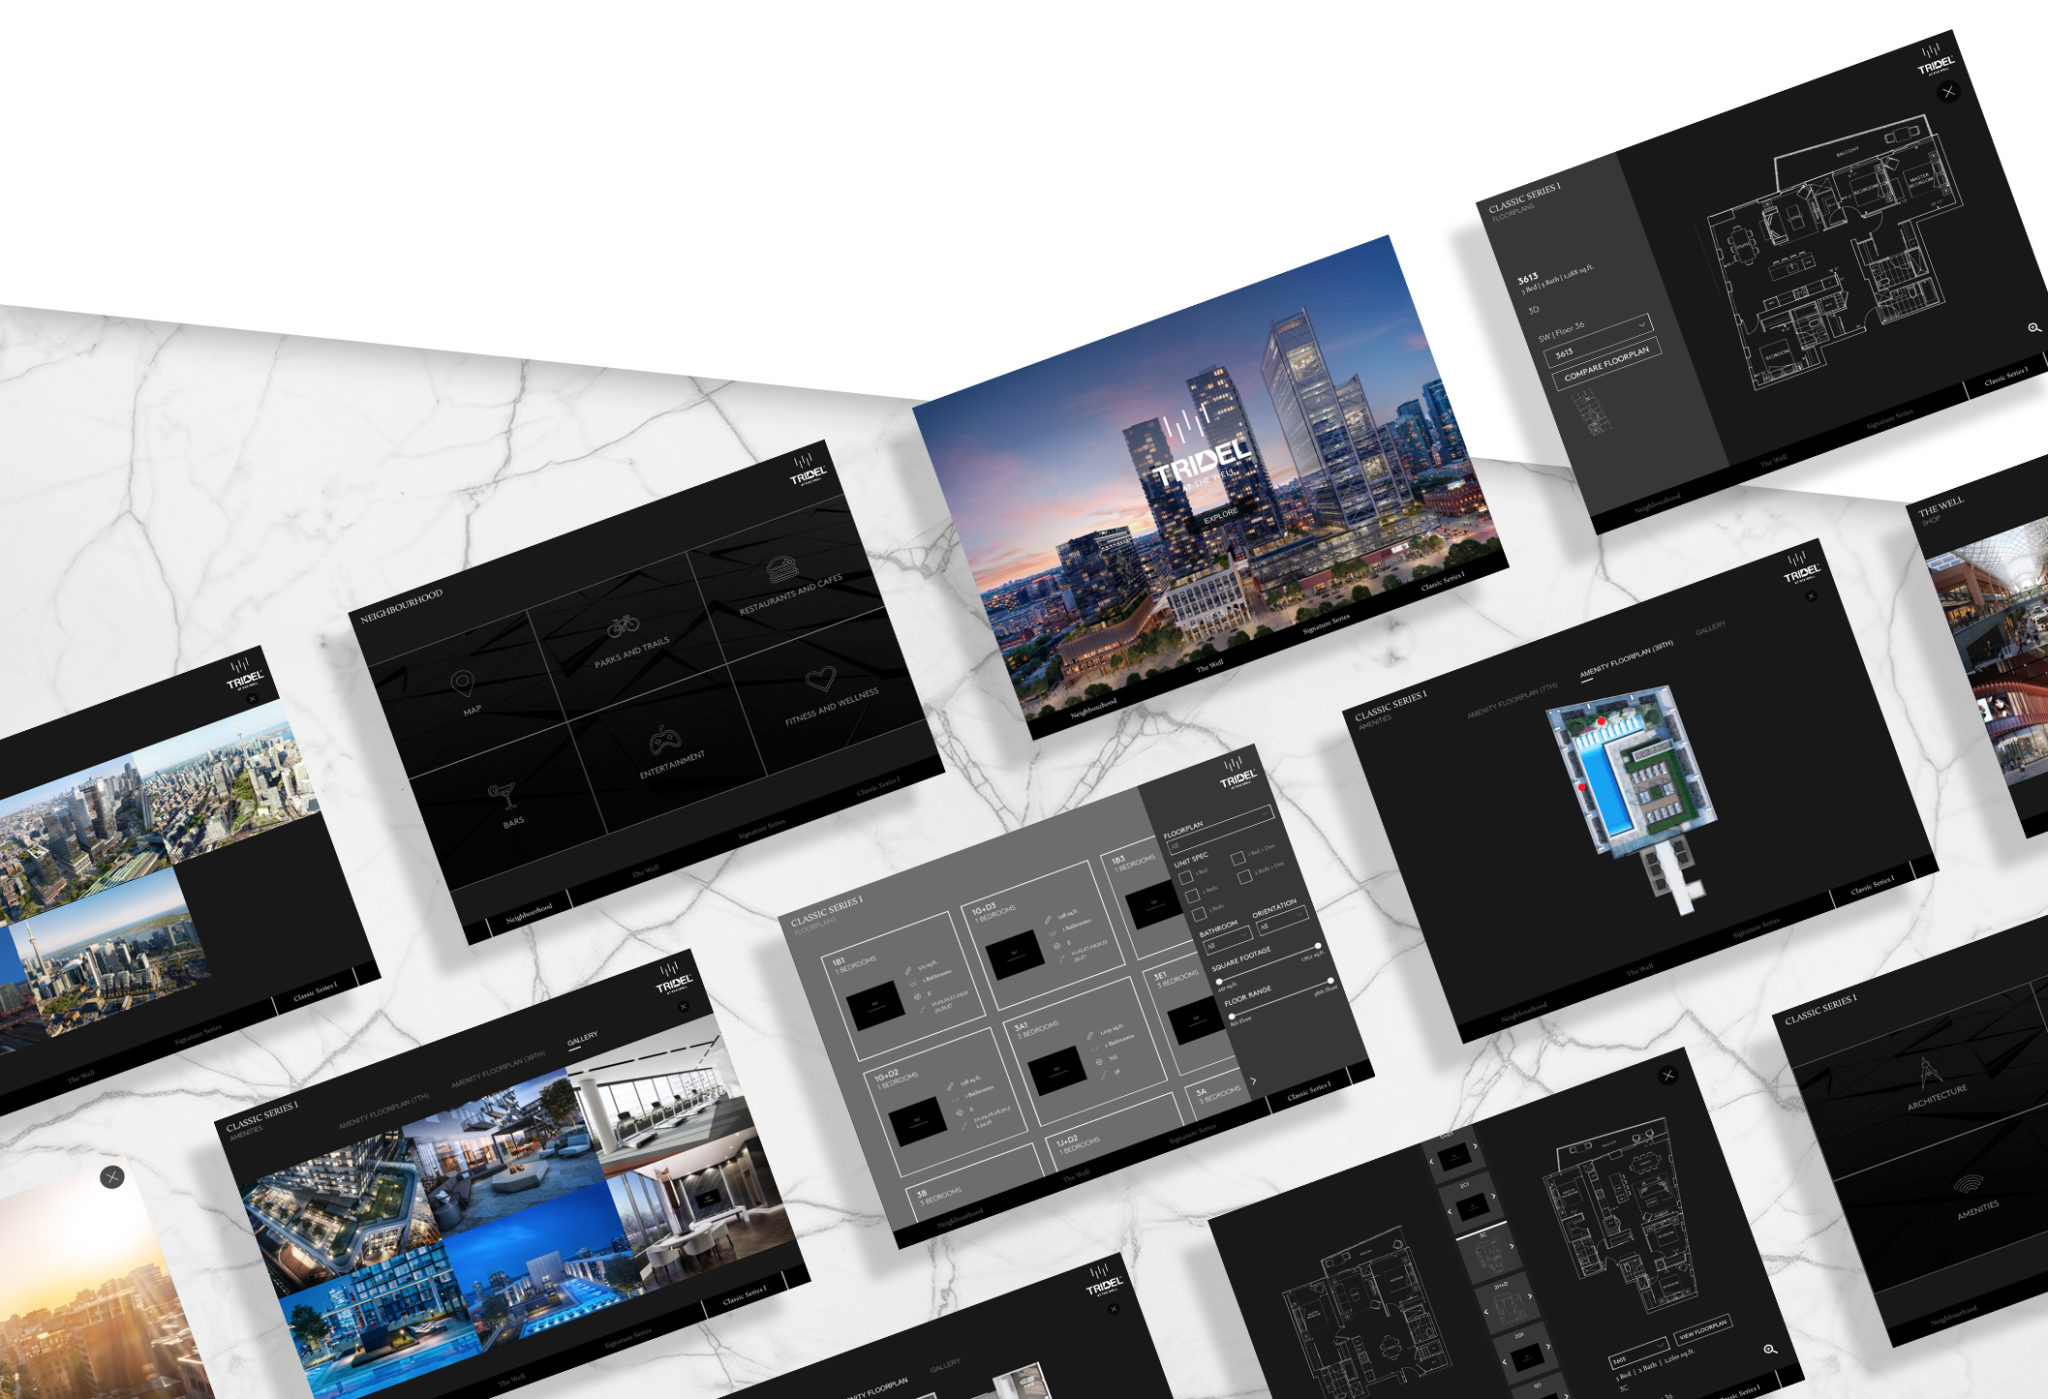 THE-WELL-2D-APP-MEDIA-WALL-IPAD-BUILDING-LIVING-TRIDEL-CANADA-SALES-CENTER-REAL-ESTATE-DEVELOPMENT